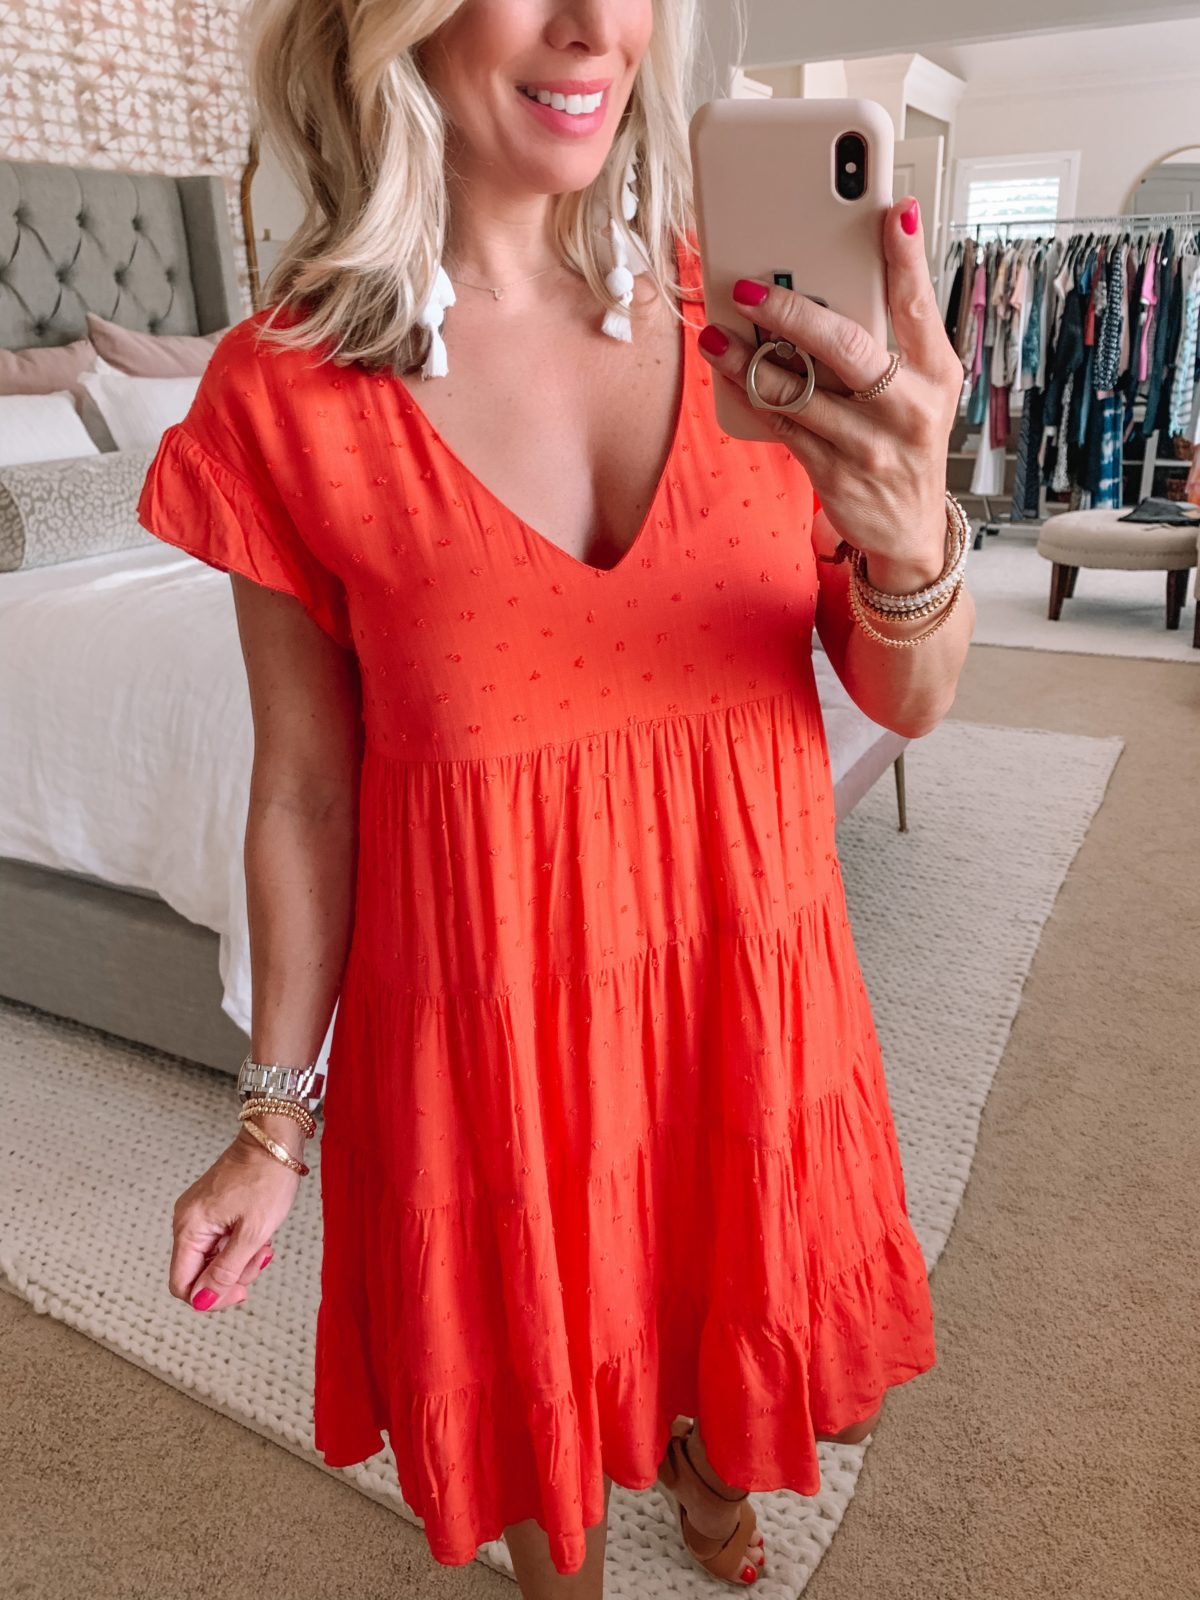 Dressing Room Finds Nordstrom and Target, Clip Dot V-Neck Baby Doll Dress, Sandals